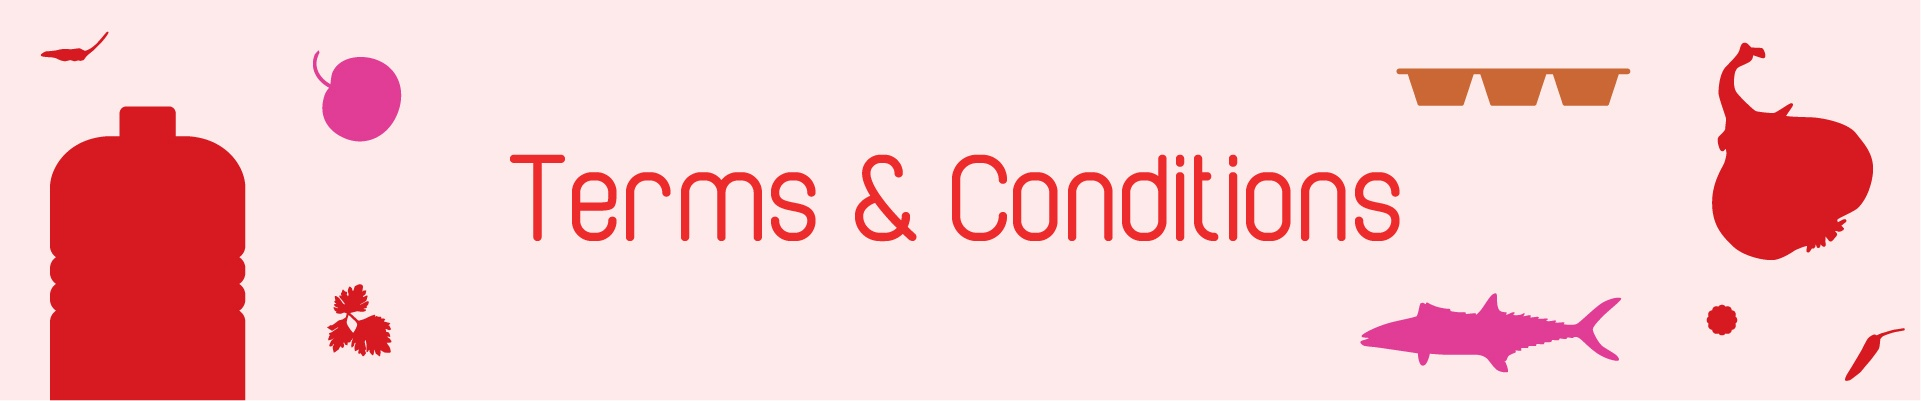 Terms & Conditions of Corporate LOTS Wholesale